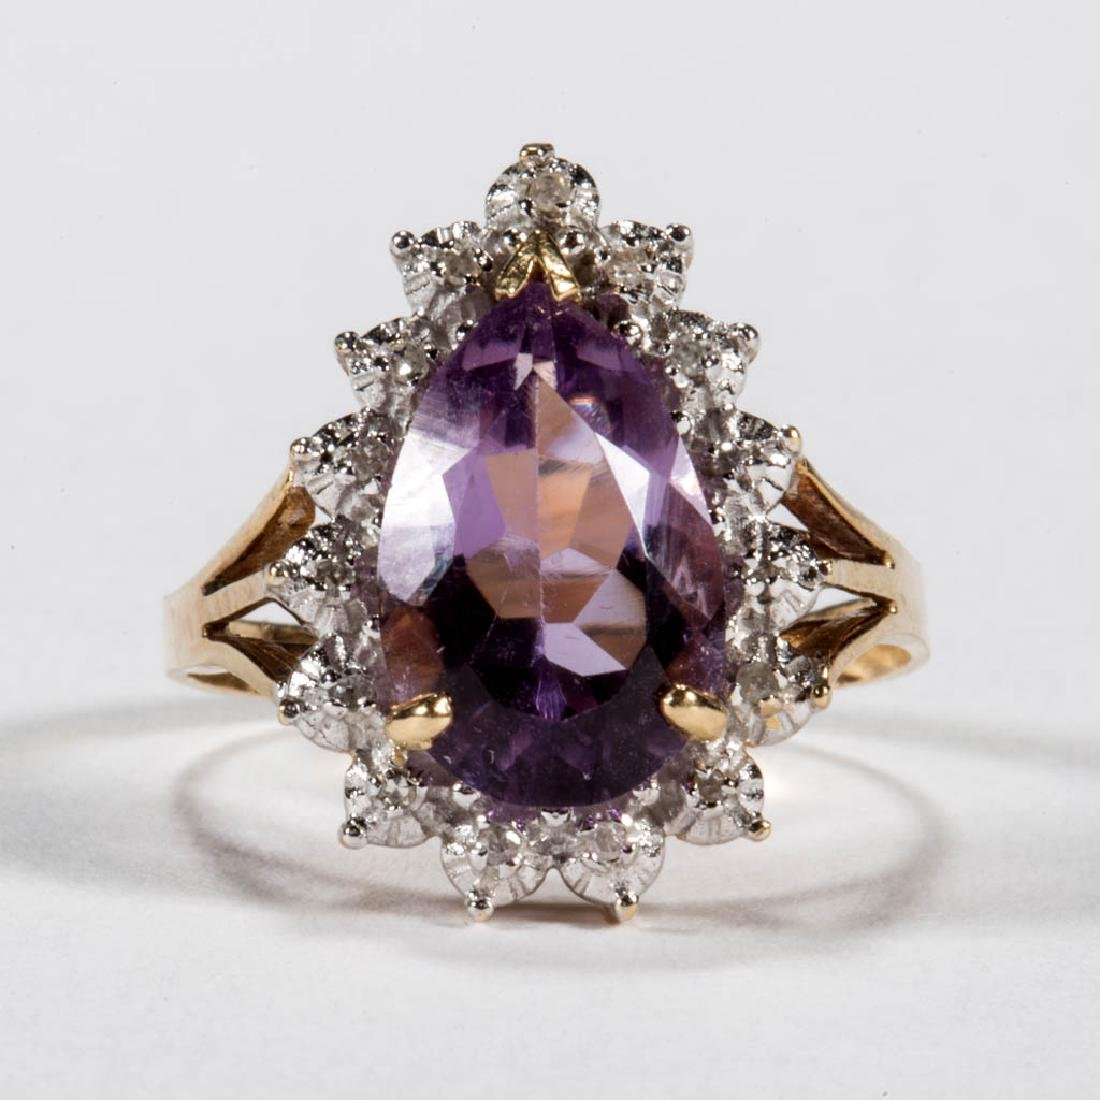 VINTAGE 14K GOLD, AMETHYST, AND DIAMOND LADY'S RING